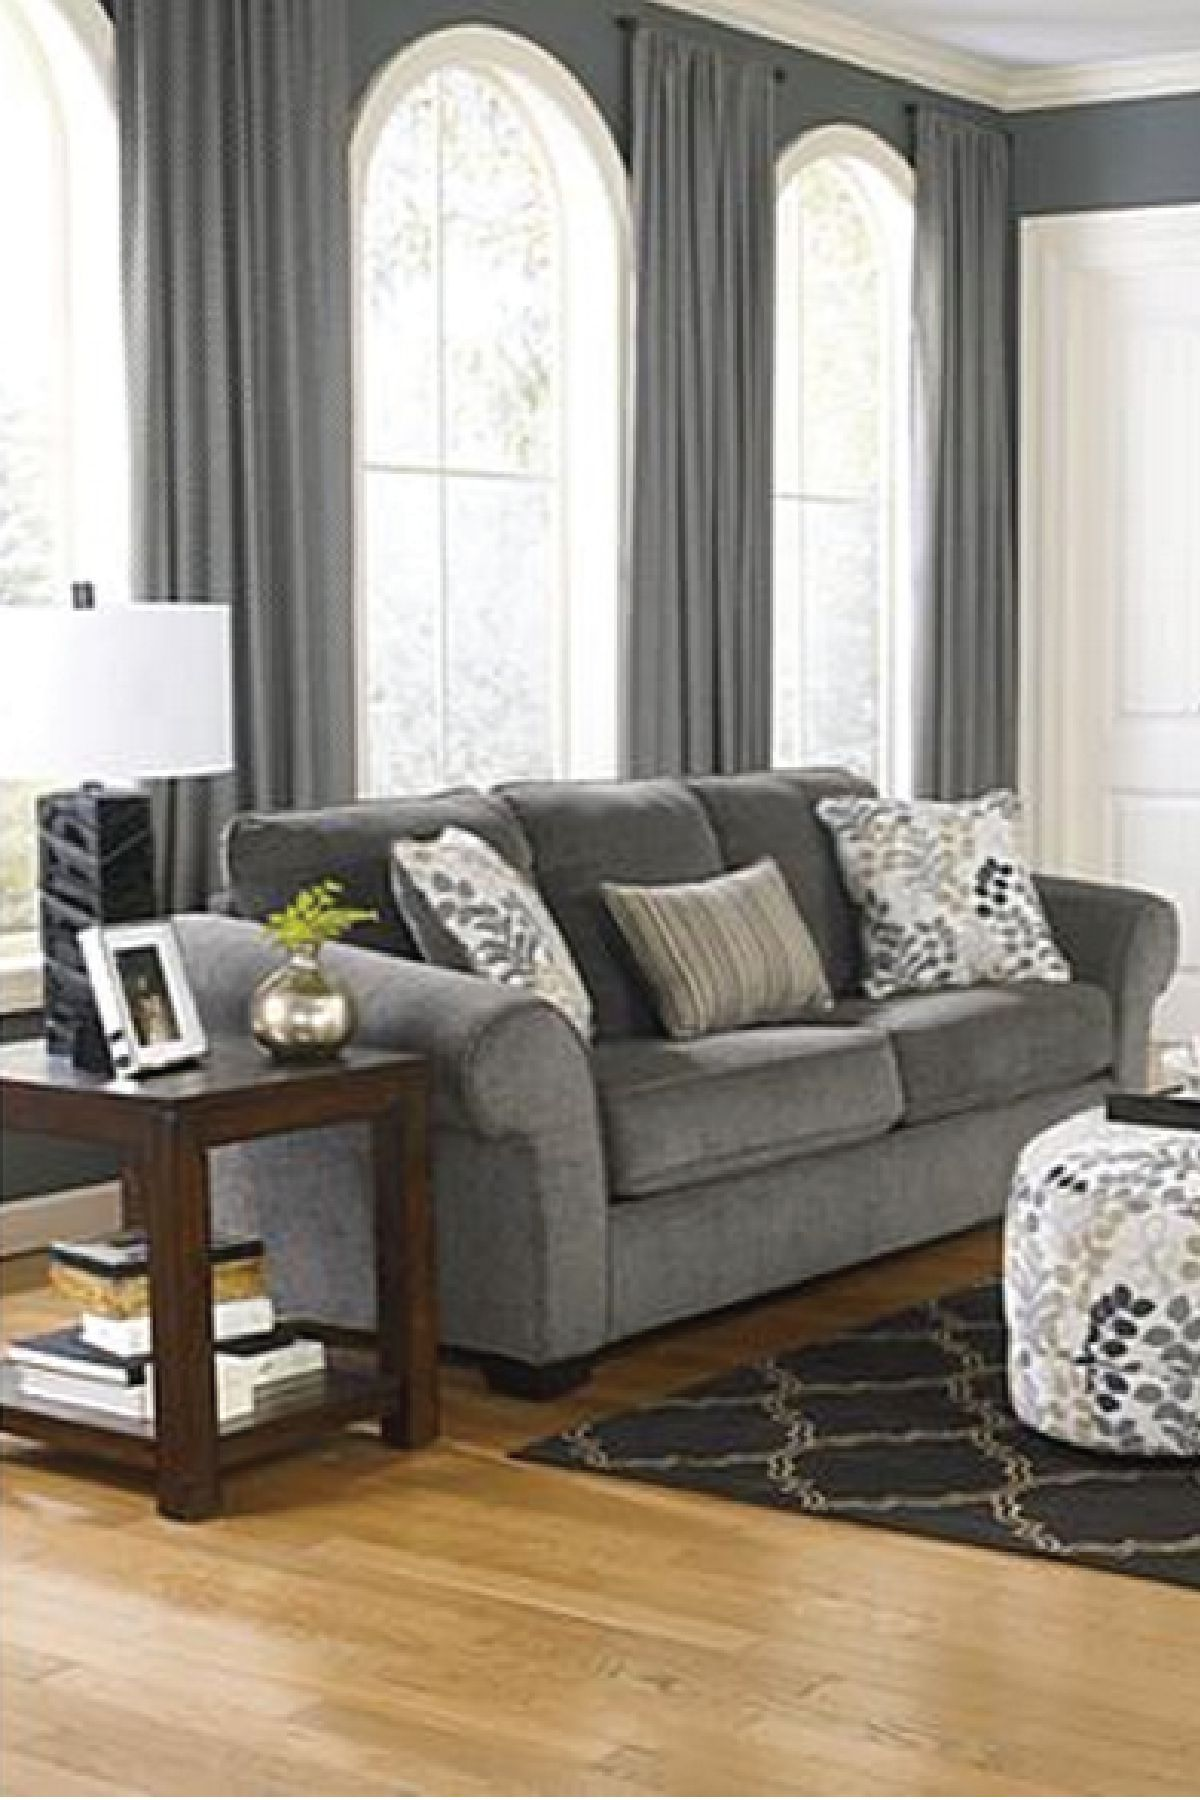 Accentuate your home with soothing tones and sophisticated design